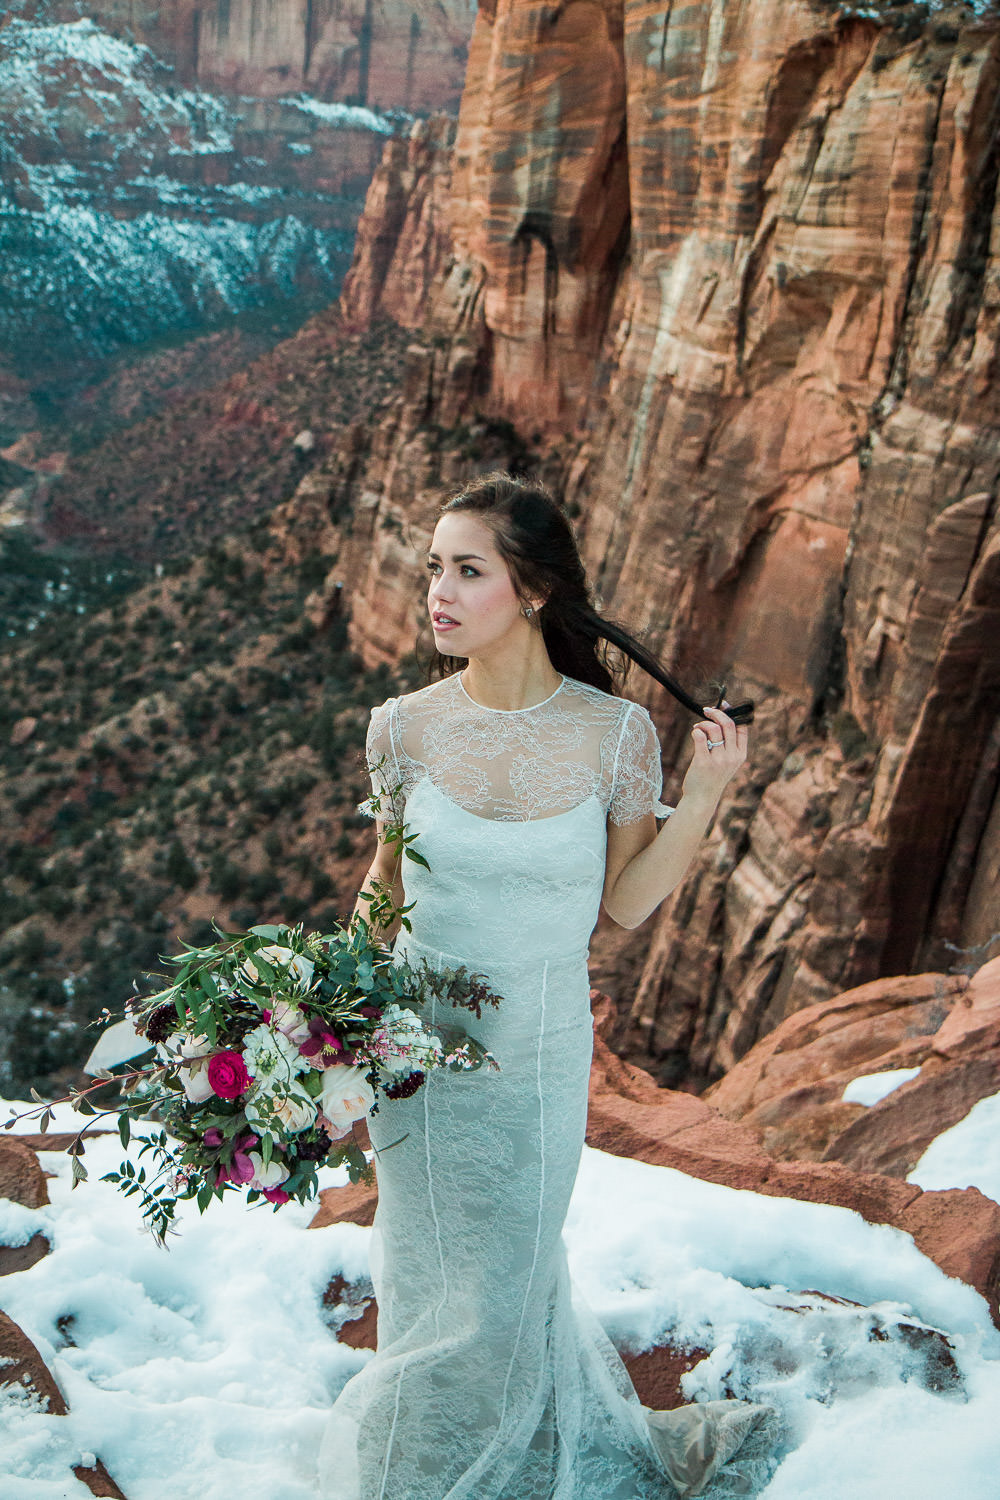 Zion National Park bride at Canyon Overlook